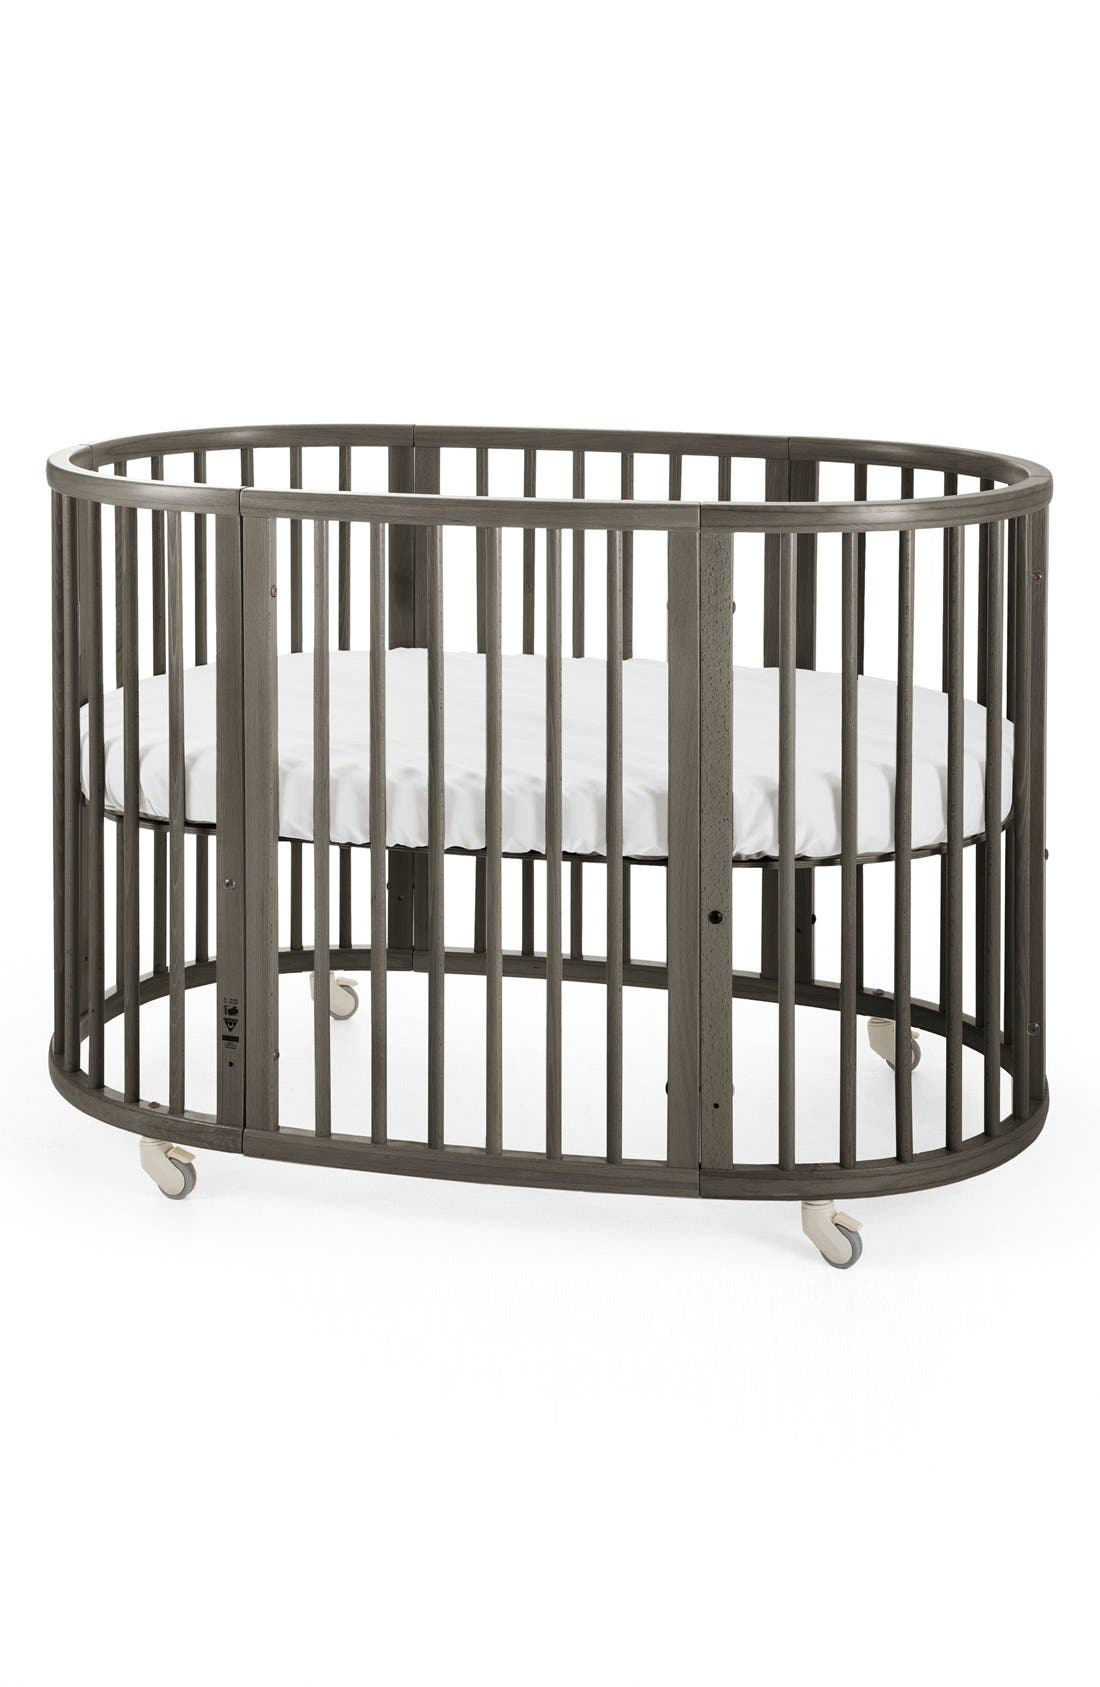 Convertible Sleepi Crib & Toddler Bed,                             Alternate thumbnail 4, color,                             Hazy Grey